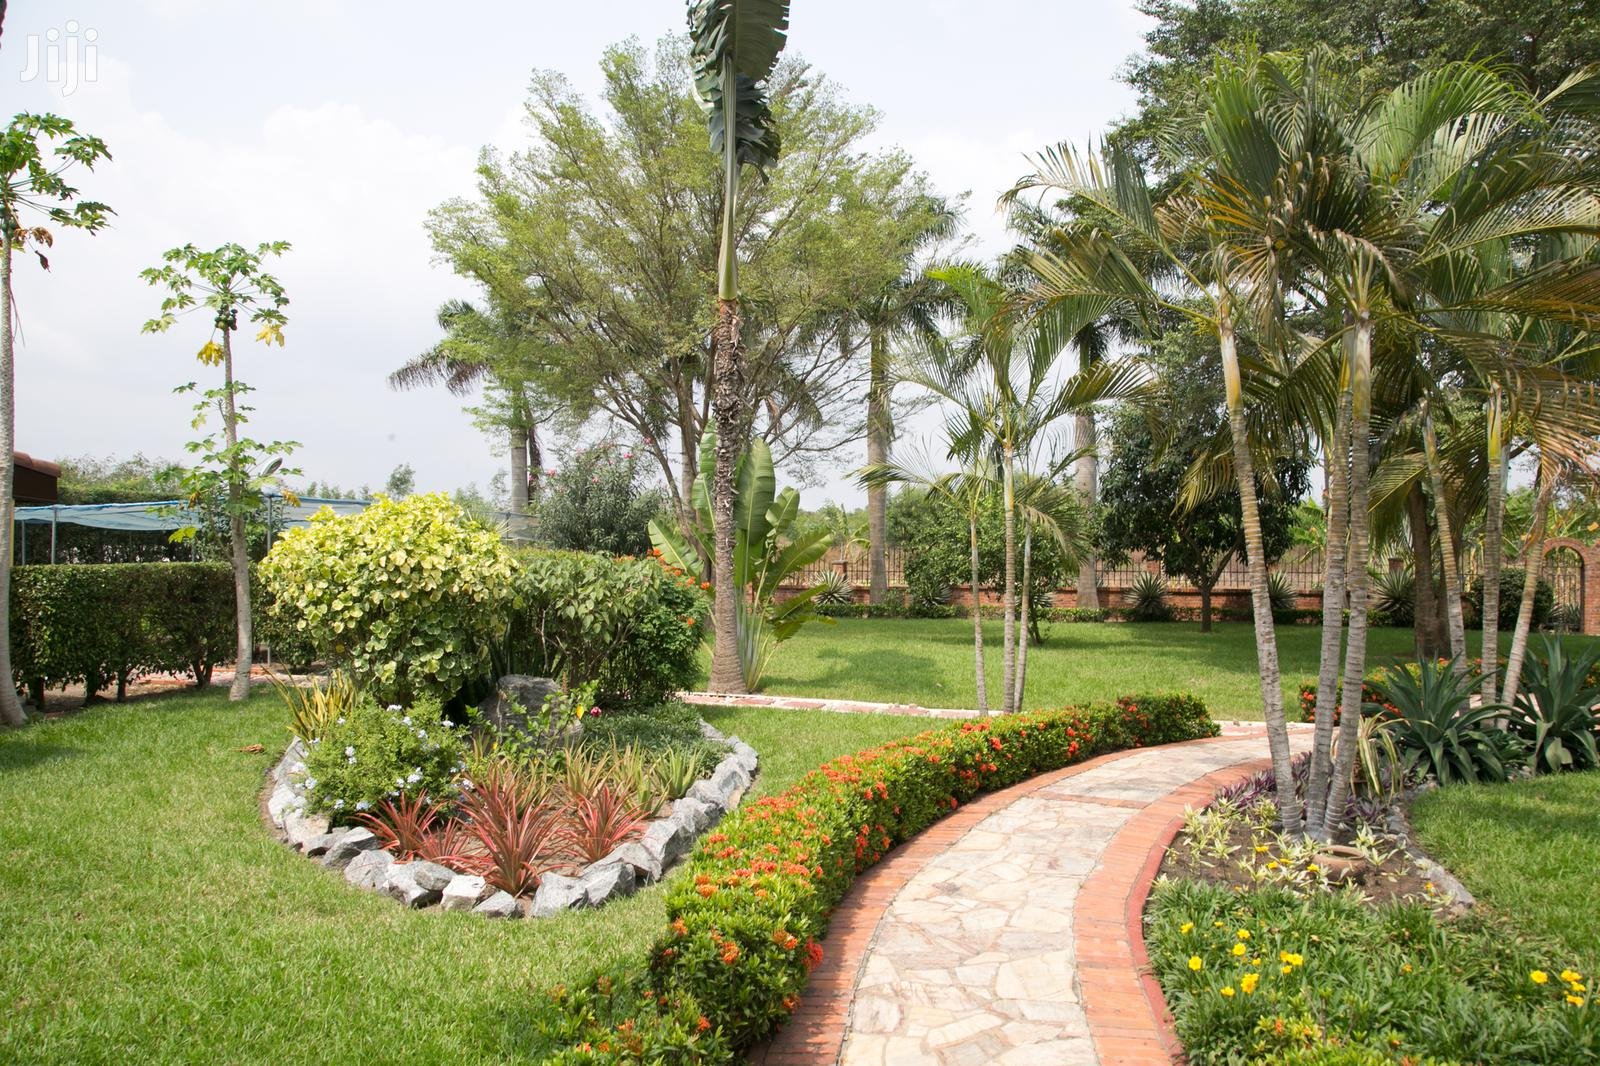 Shanti Gardens | Event Centers and Venues for sale in East Legon, Greater Accra, Ghana